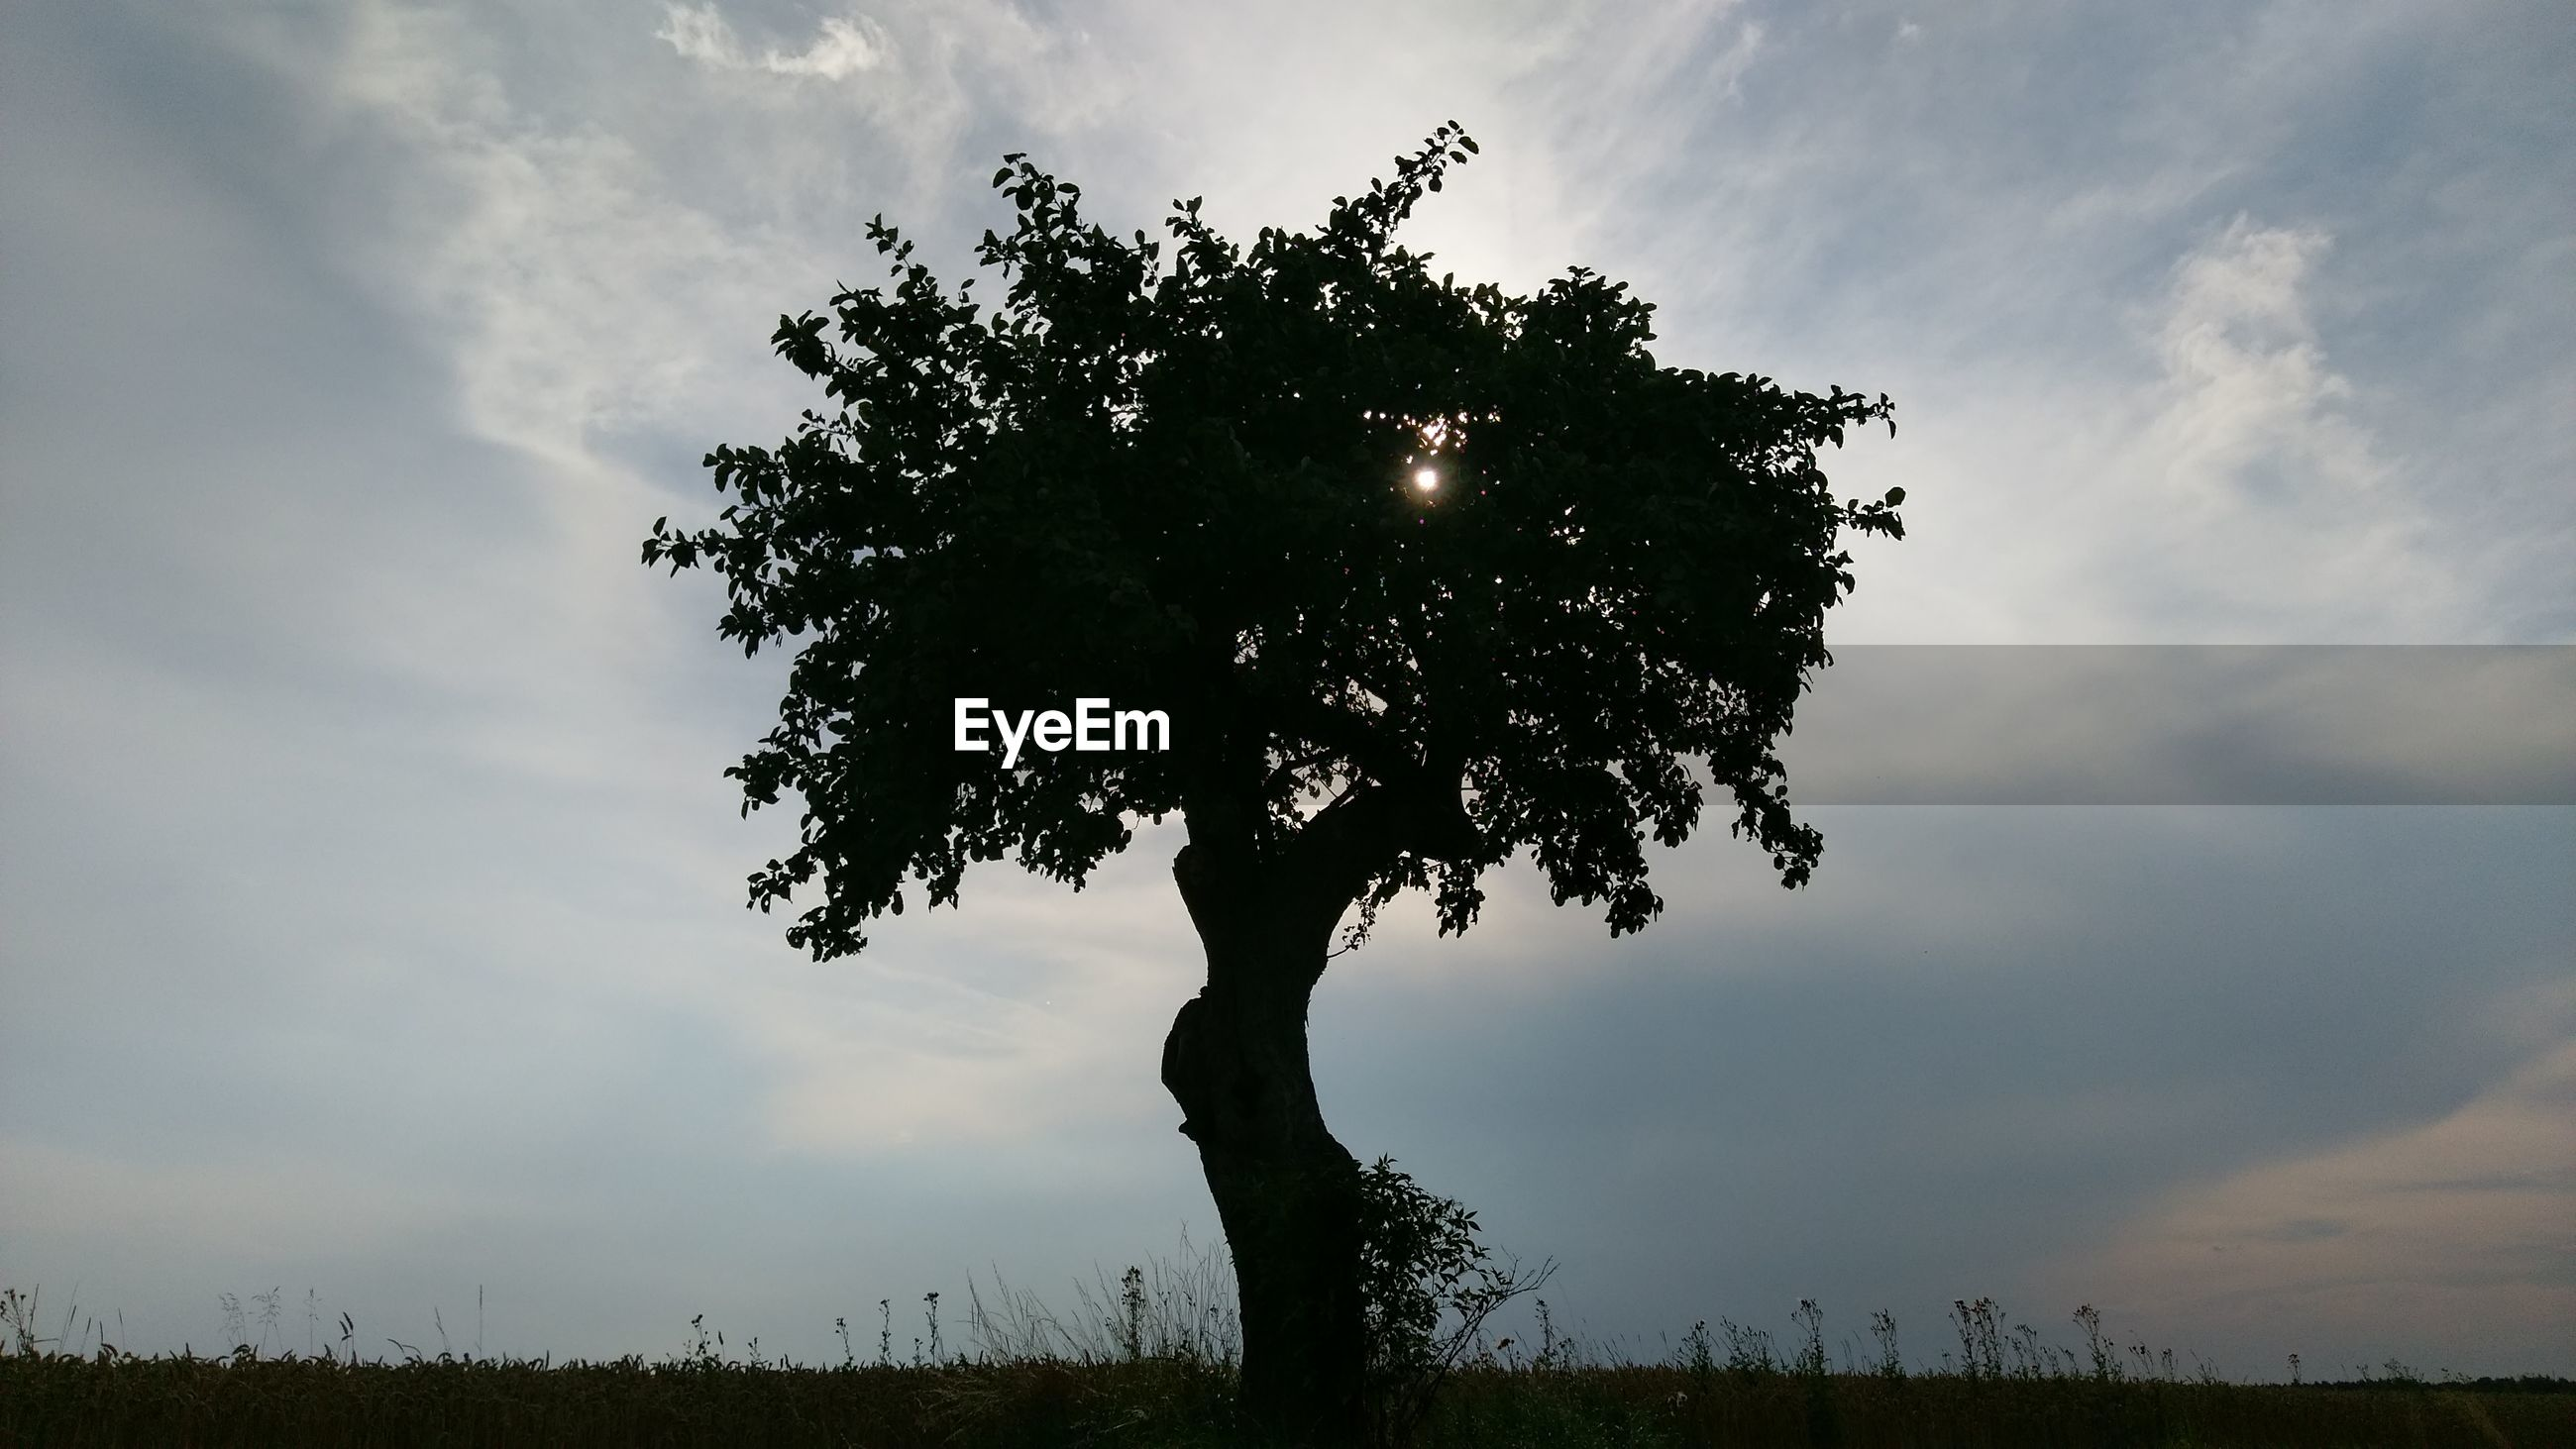 Silhouette tree on field against cloudy sky